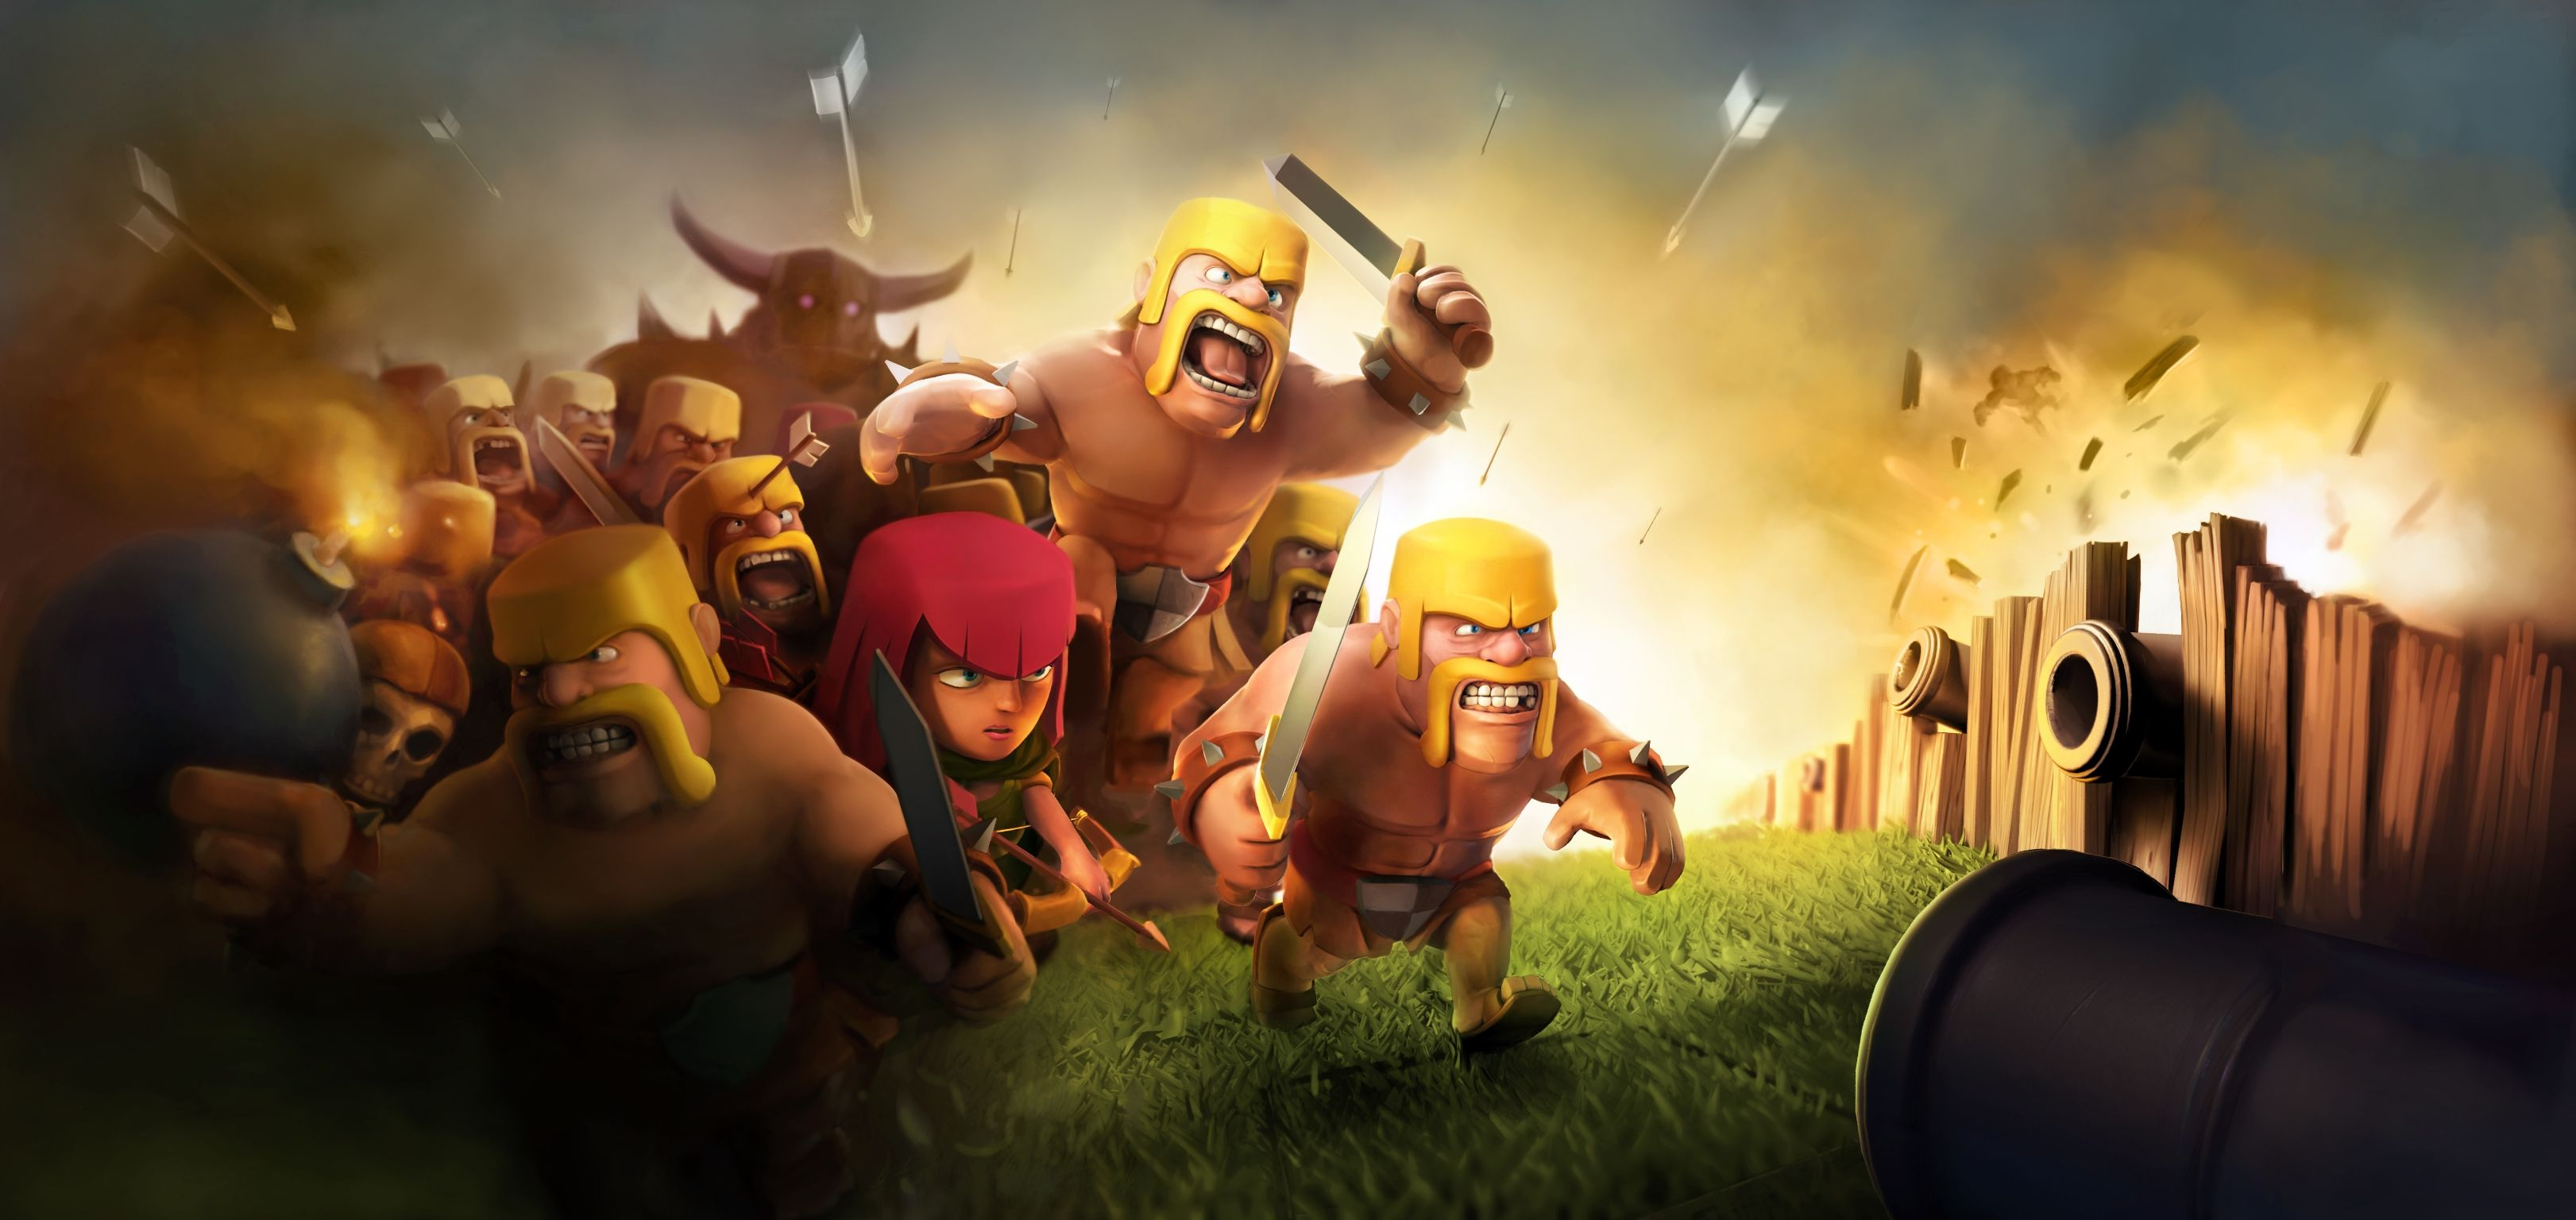 60 Wallpaper HD Android Clash Of Clans COC Terbaru Part